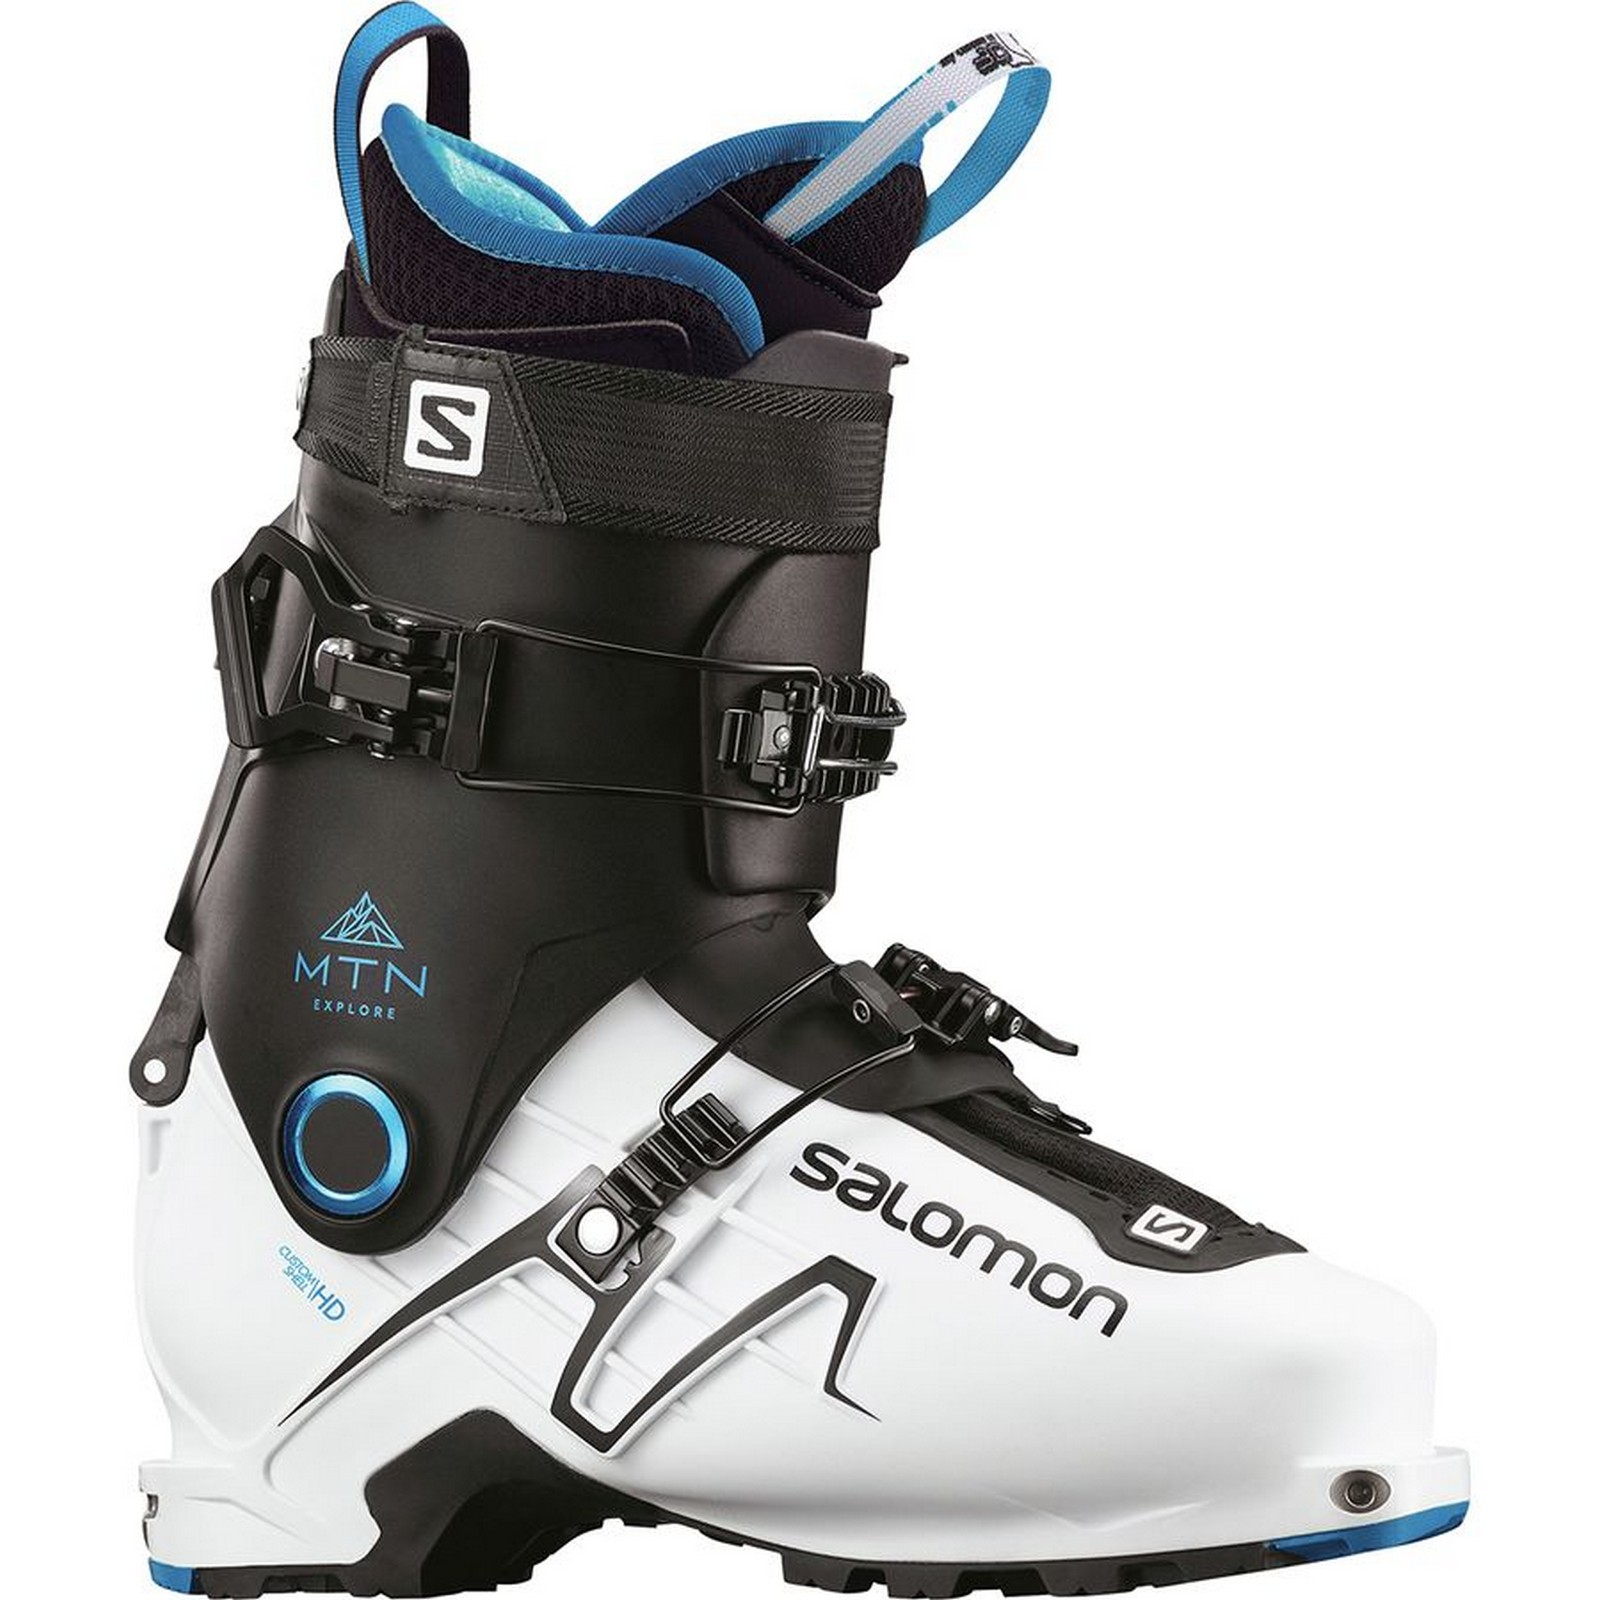 966cd35f9 Salomon MTN Explore Men s Alpine Touring Backcountry Ski Boot - New ...